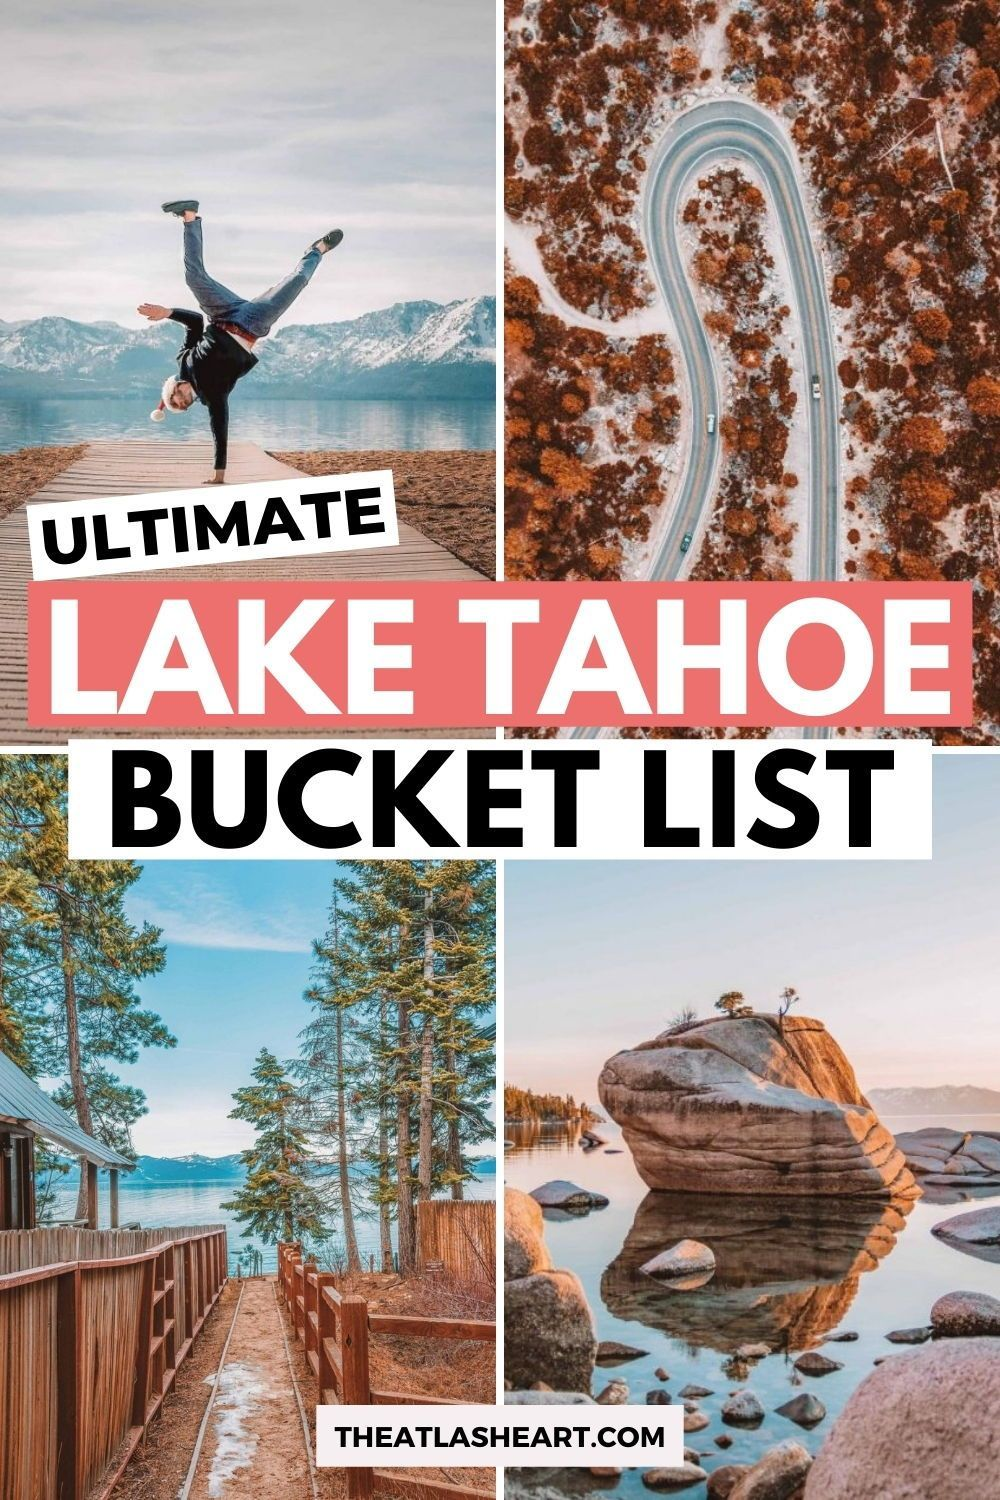 50 of the best things to do in Lake Tahoe! Lake Tahoe is a favorite Northern California getaway and California travel destination. Because of this, every California bucket list should have a Lake Tahoe vacation on it - it's California's most beautiful lake! If you're wondering what to do in Lake Tahoe, these are my picks for a Lake Tahoe summer bucket list (or winter bucket list), including the top free things to do in Lake Tahoe (there are a lot). #laketahoe #laketahoevacation #tahoe